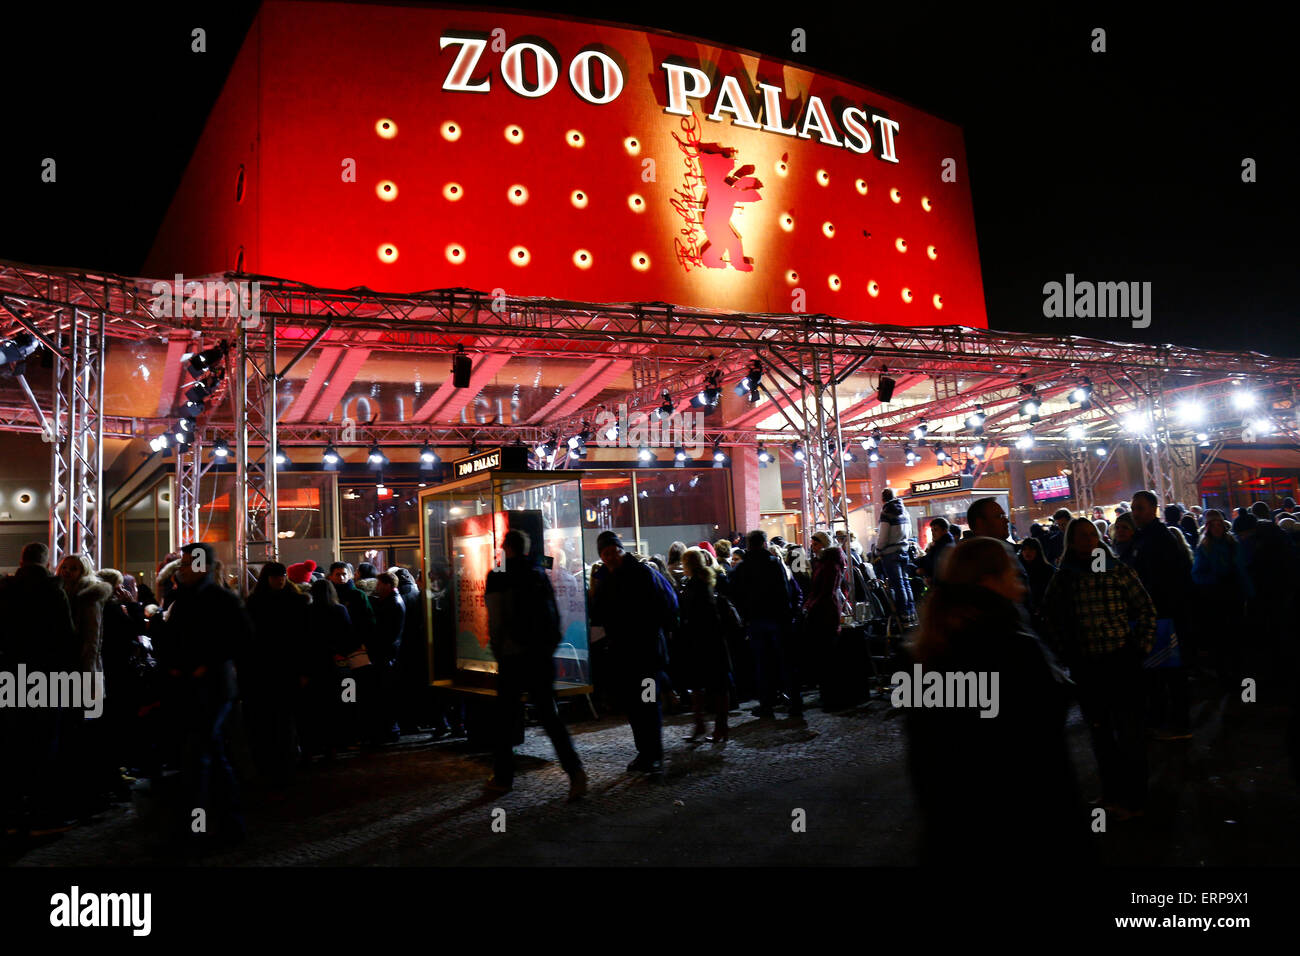 Zoo Palast Roter Teppich Roter Teppich Stock Photos And Roter Teppich Stock Images